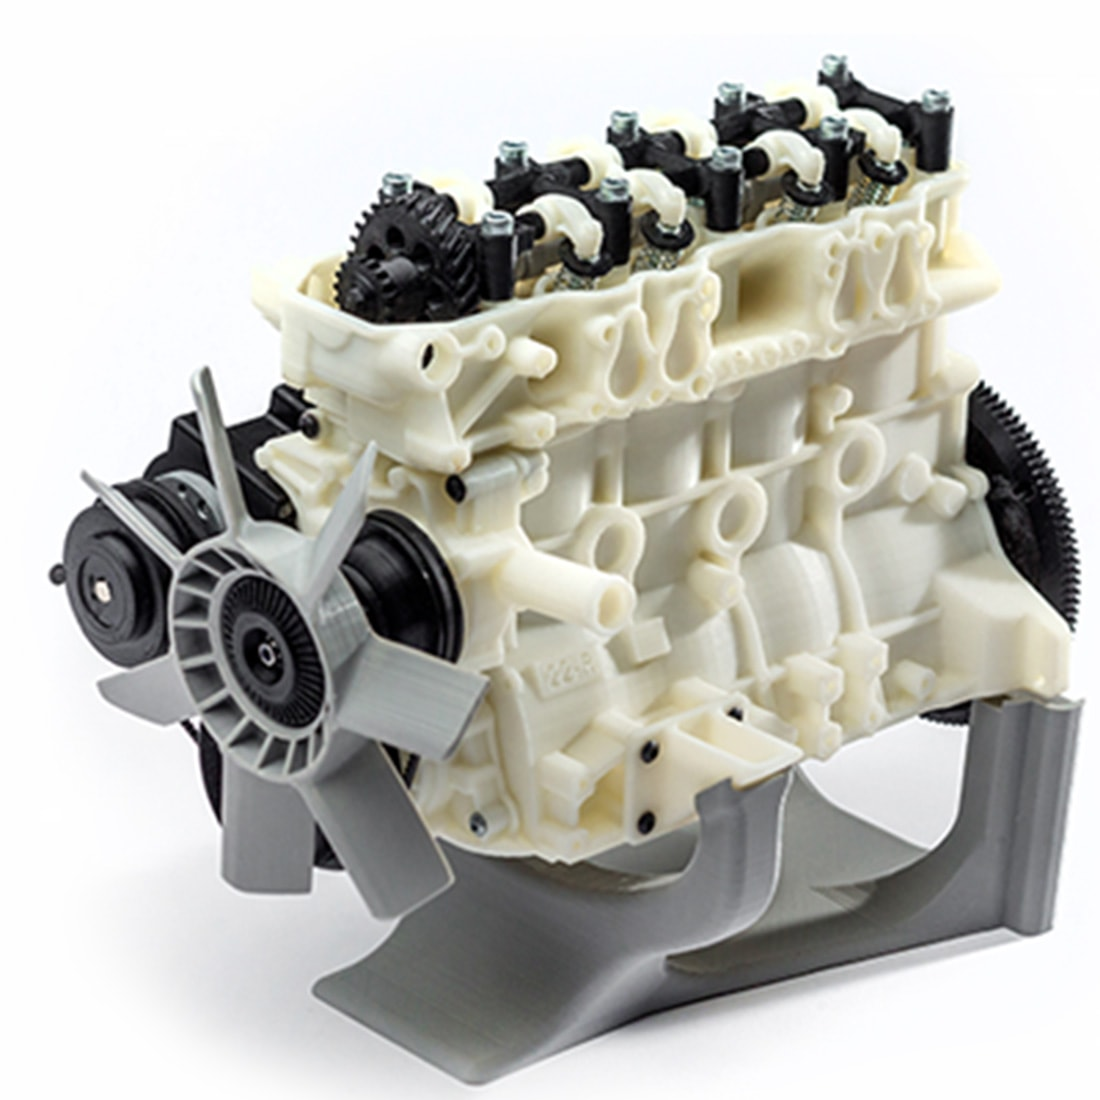 3D Printing in Automotive Industry | Zeal 3D Printing